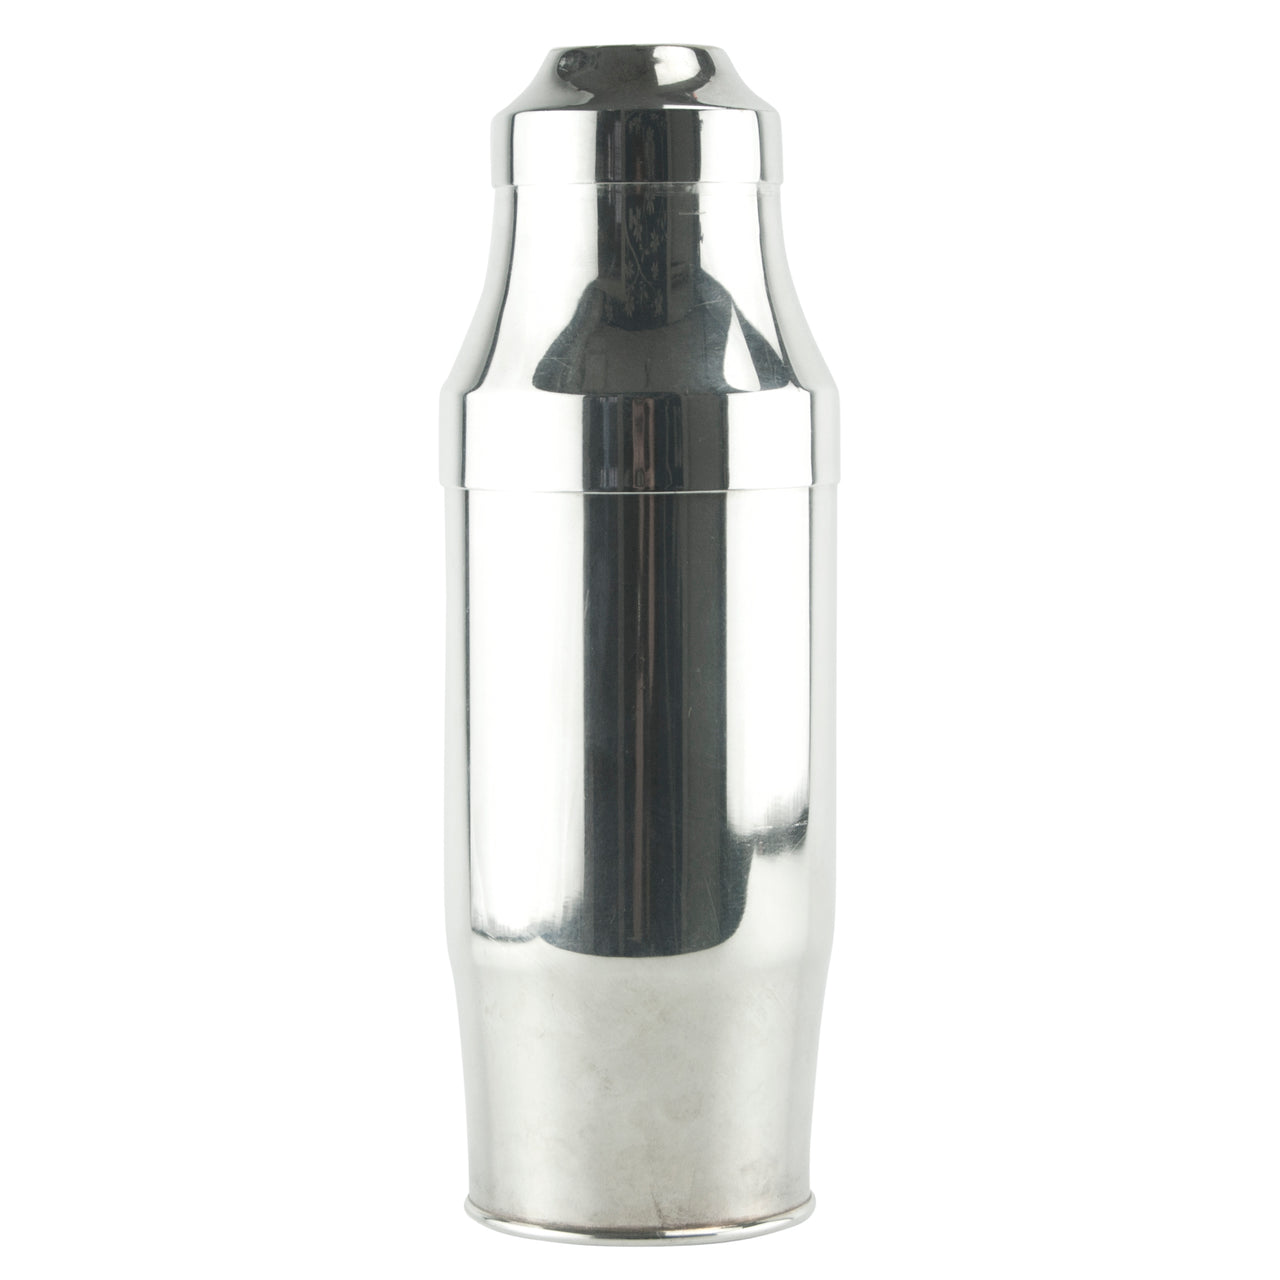 Bel Prata Silver Plate Cocktail Shaker | The Hour Shop Vintage